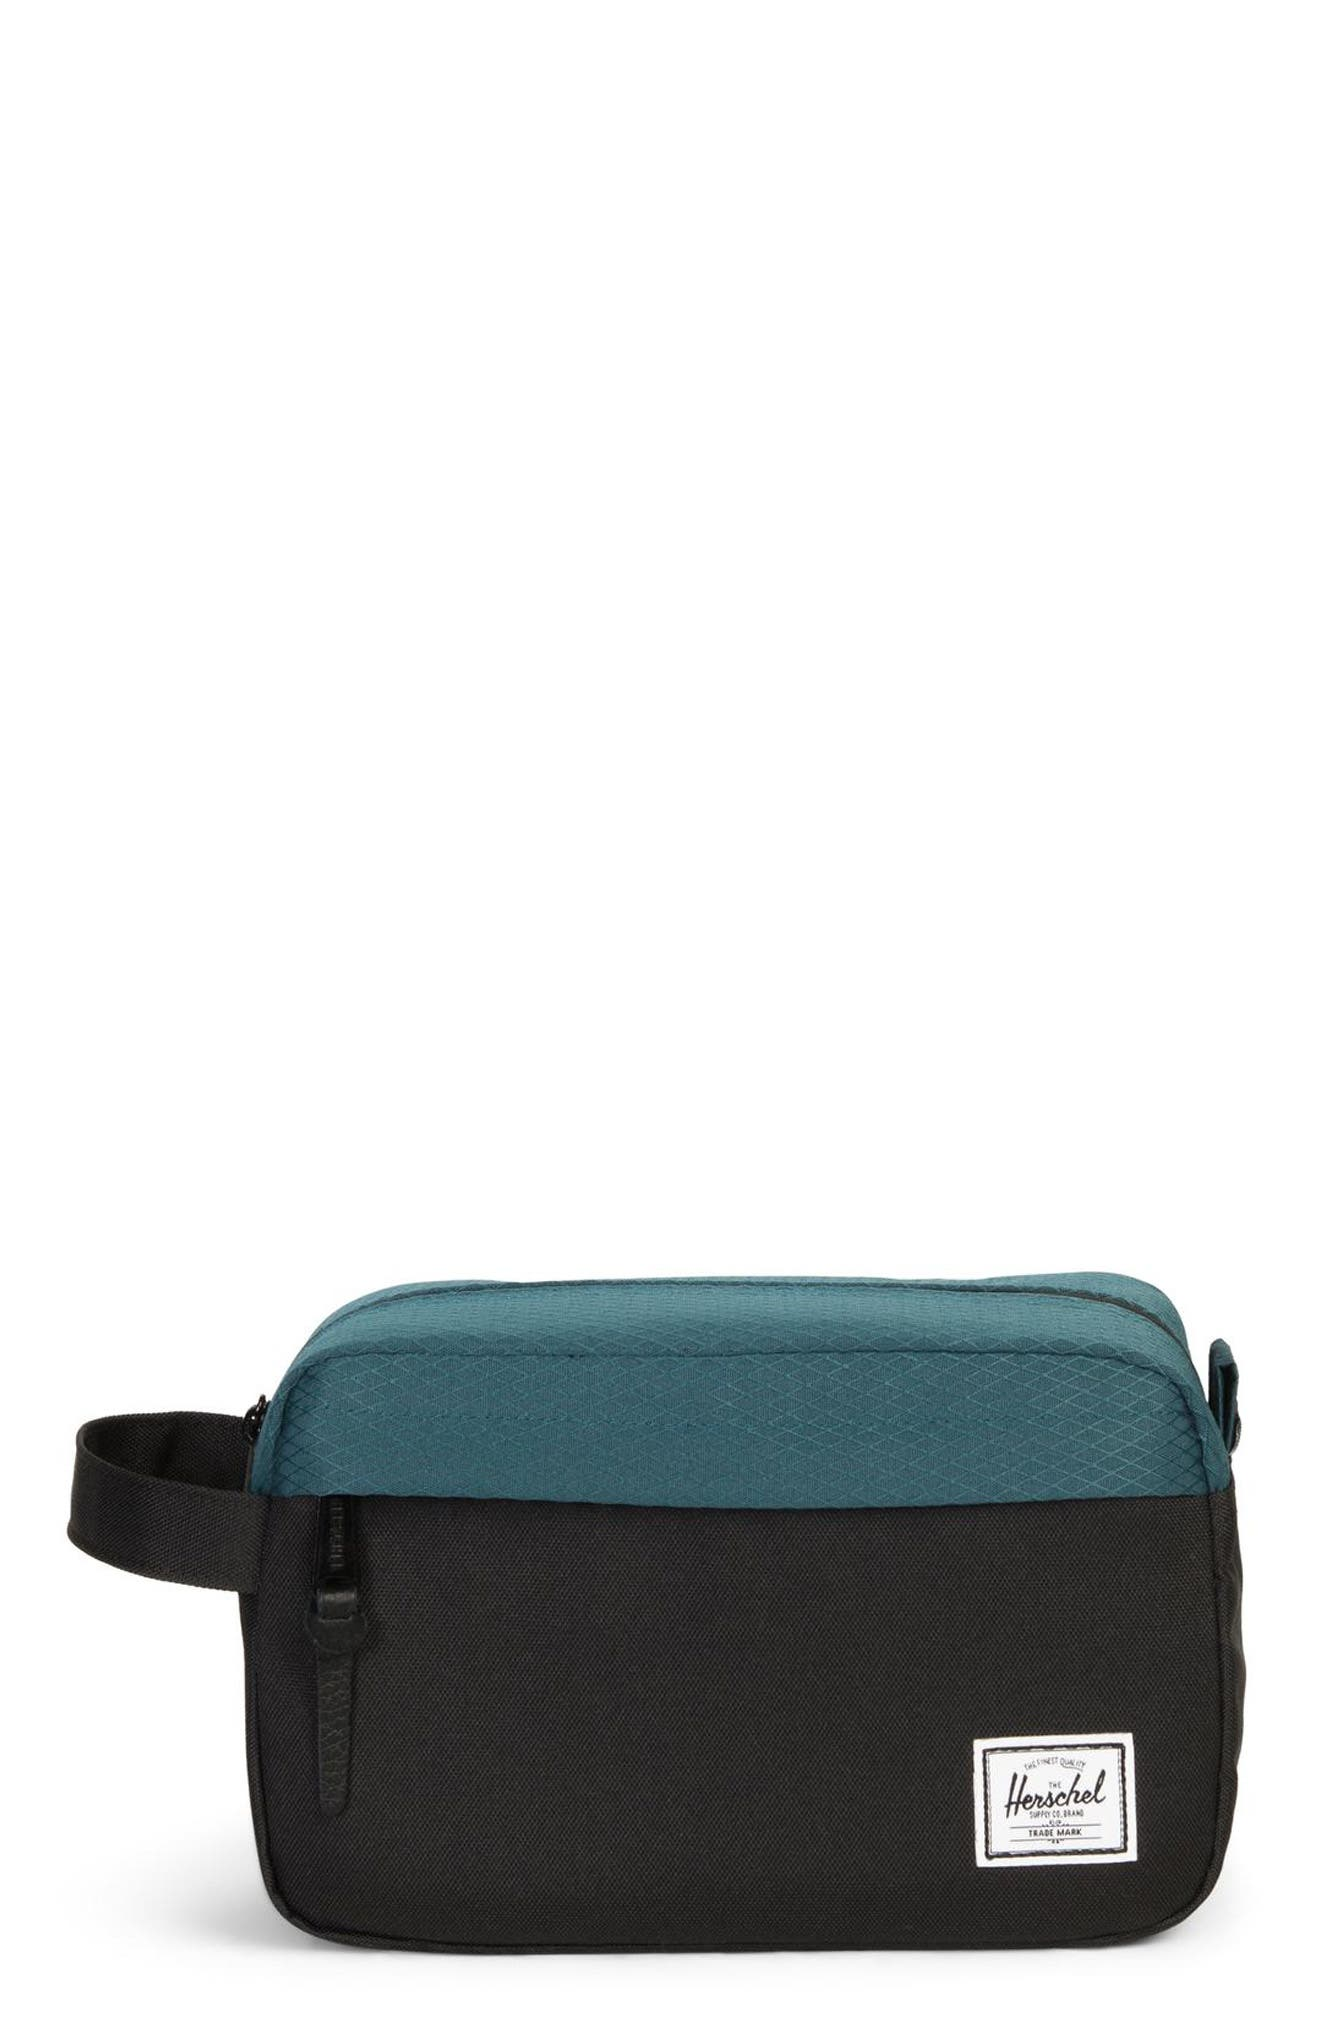 Chapter Dopp Kit,                         Main,                         color, 002